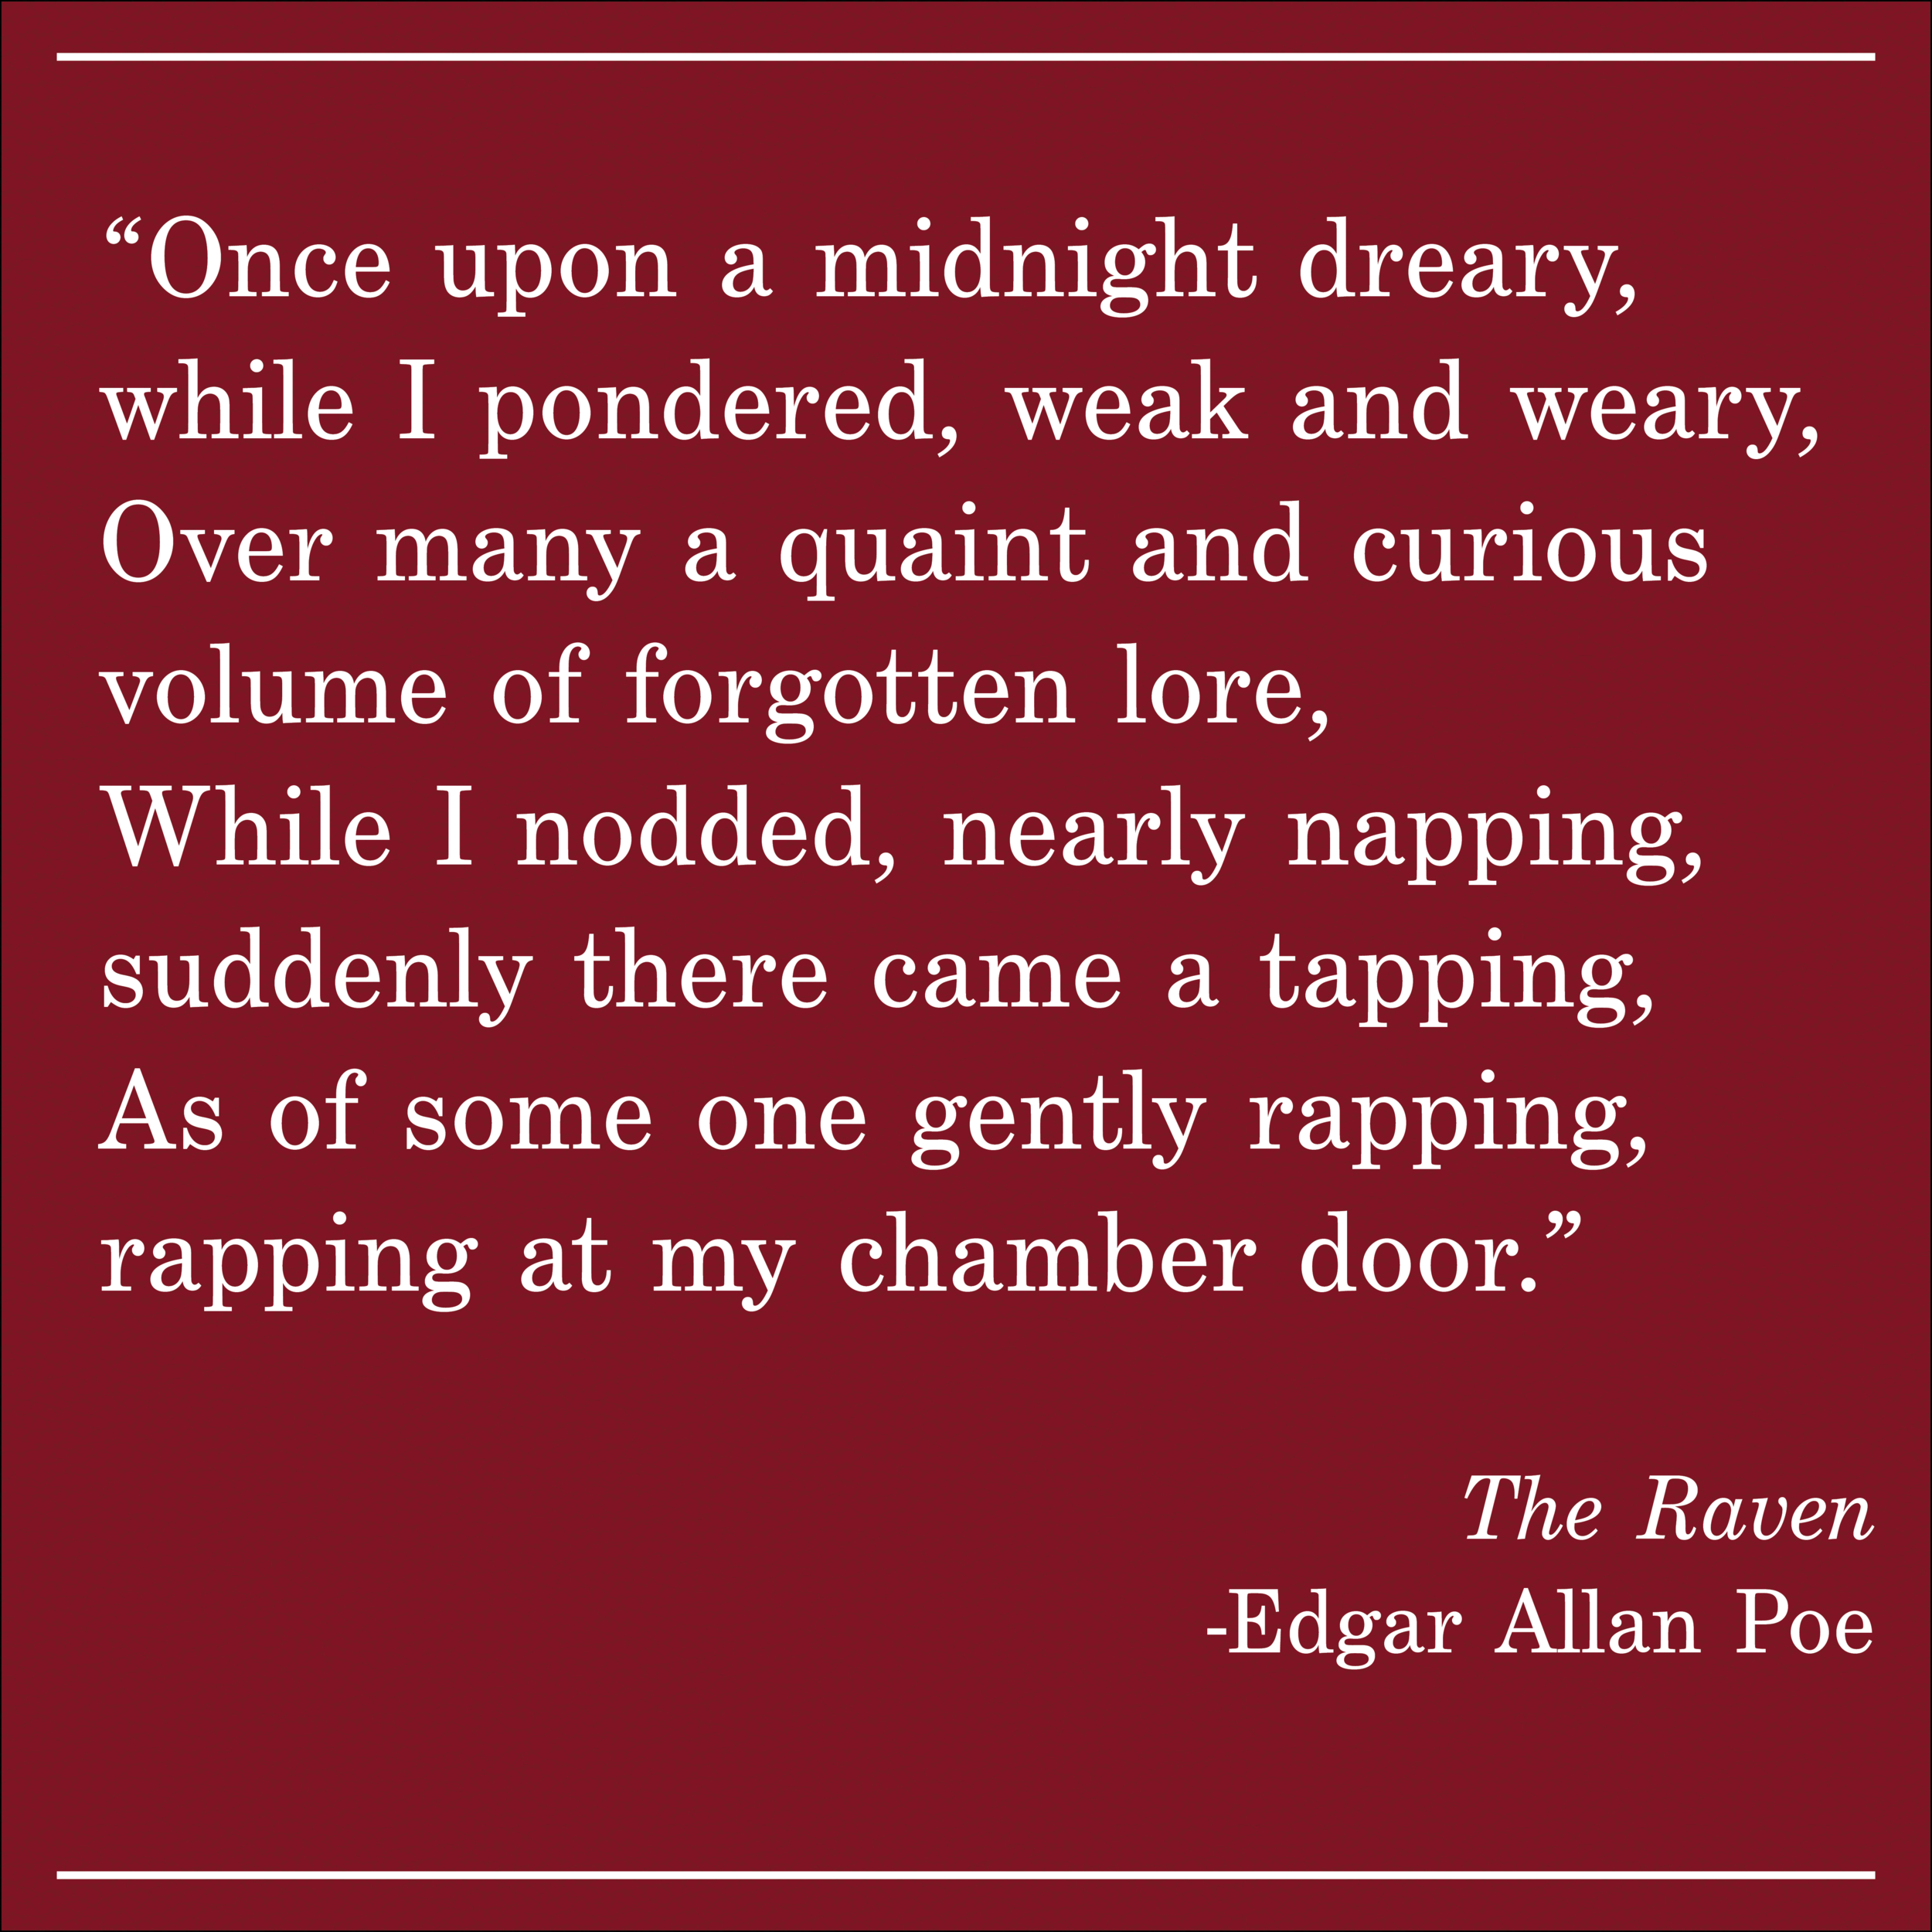 Daily Quote The Raven by Edgar Allan Poe